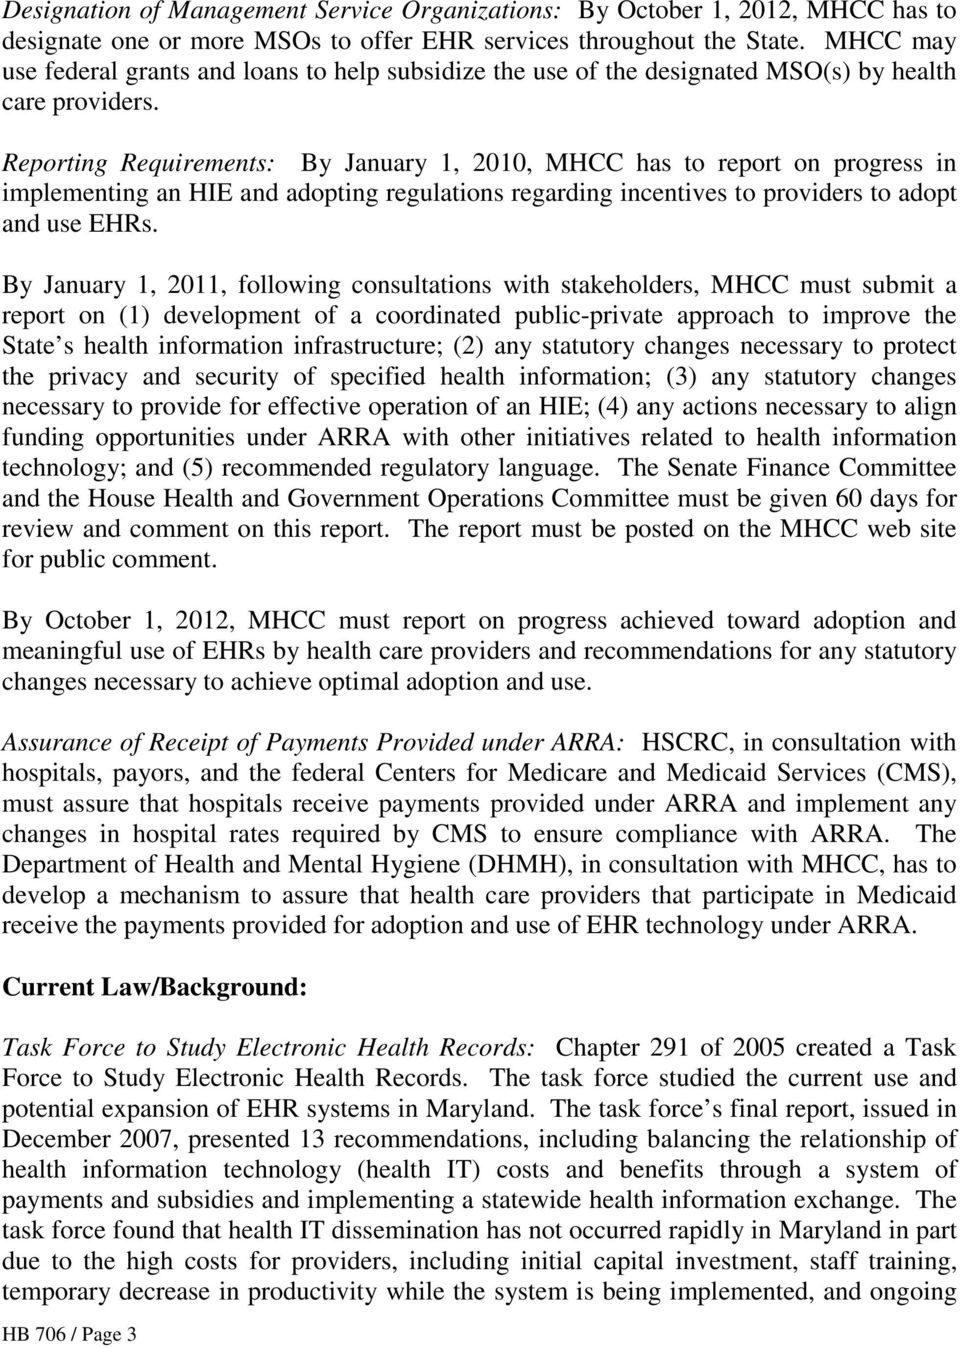 Reporting Requirements: By January 1, 2010, MHCC has to report on progress in implementing an HIE and adopting regulations regarding incentives to providers to adopt and use EHRs.